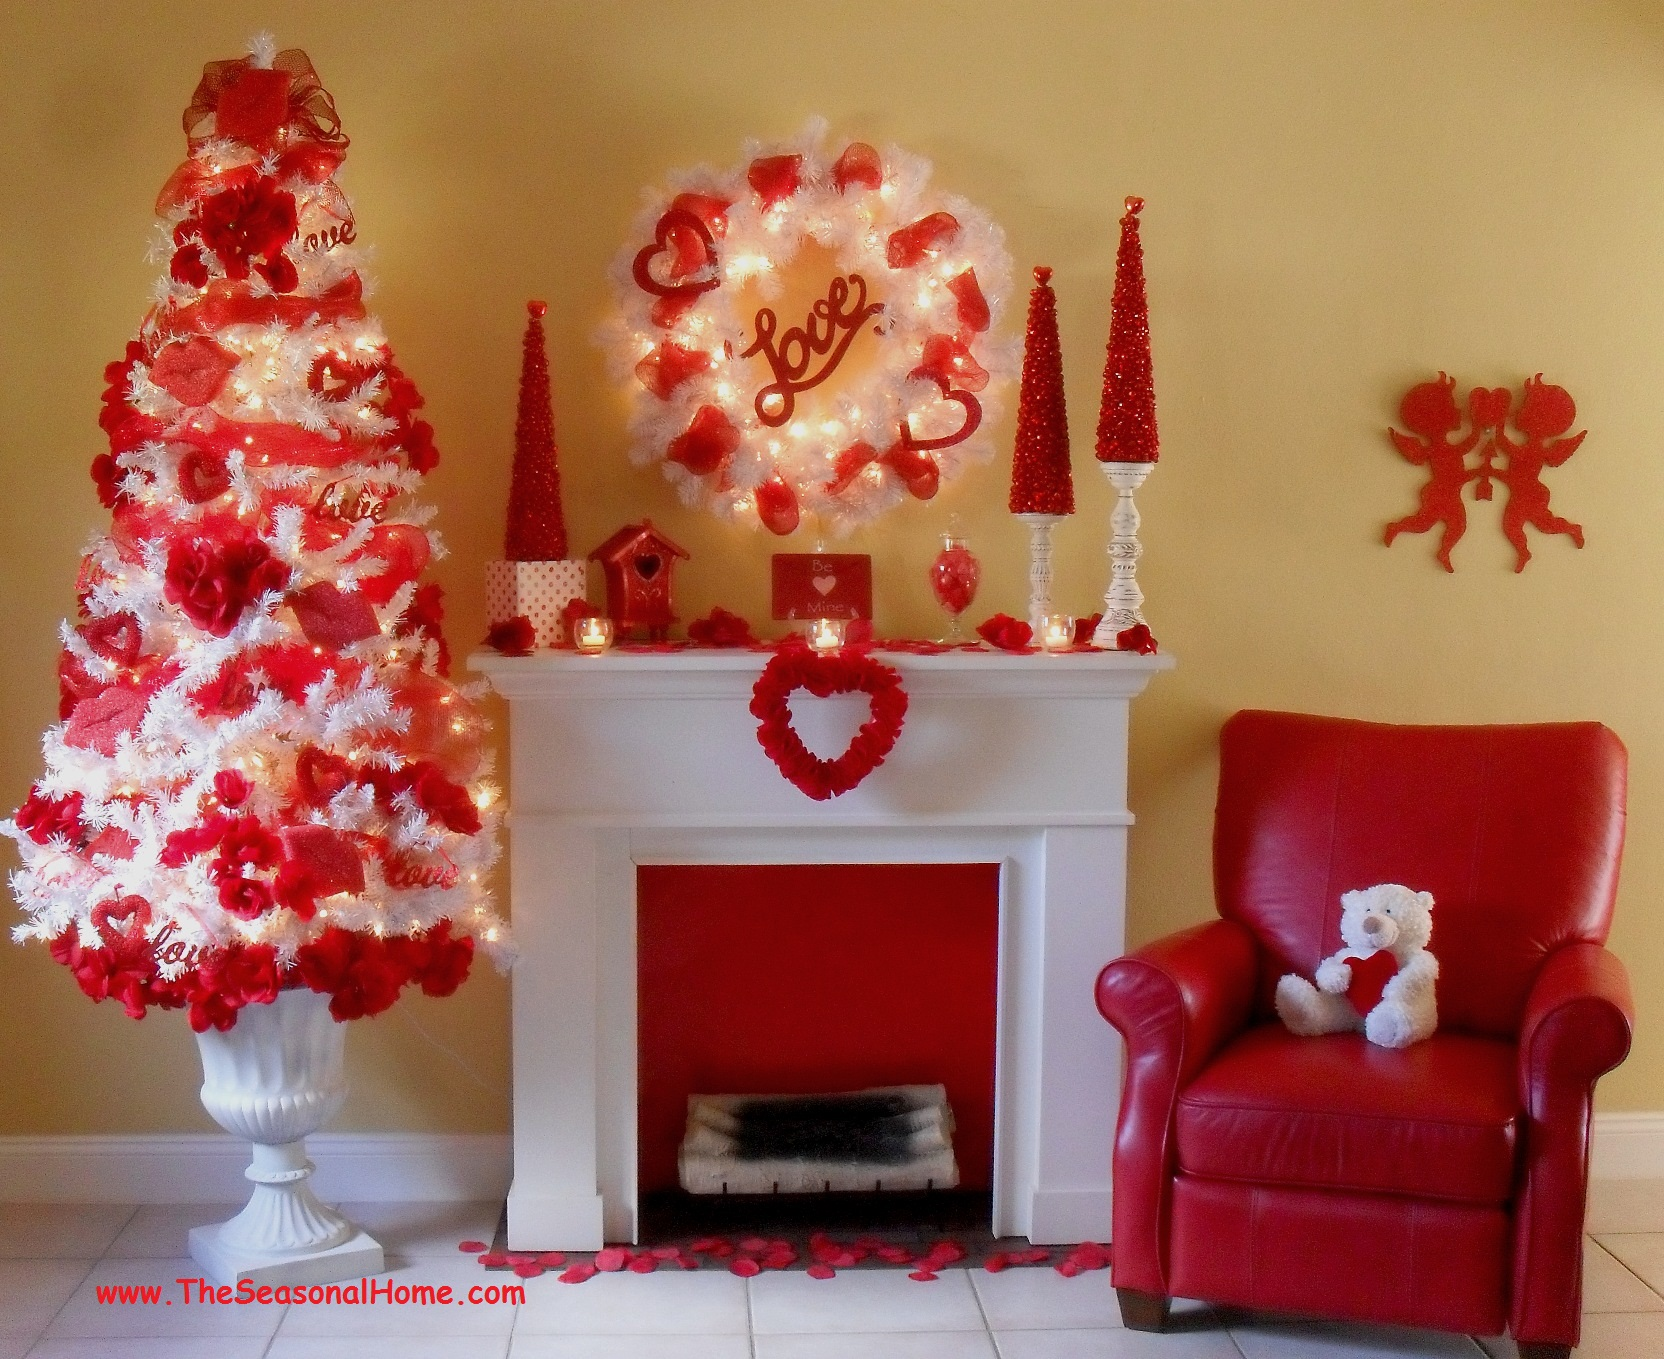 Cute Valentines Day Home Decorating Idea